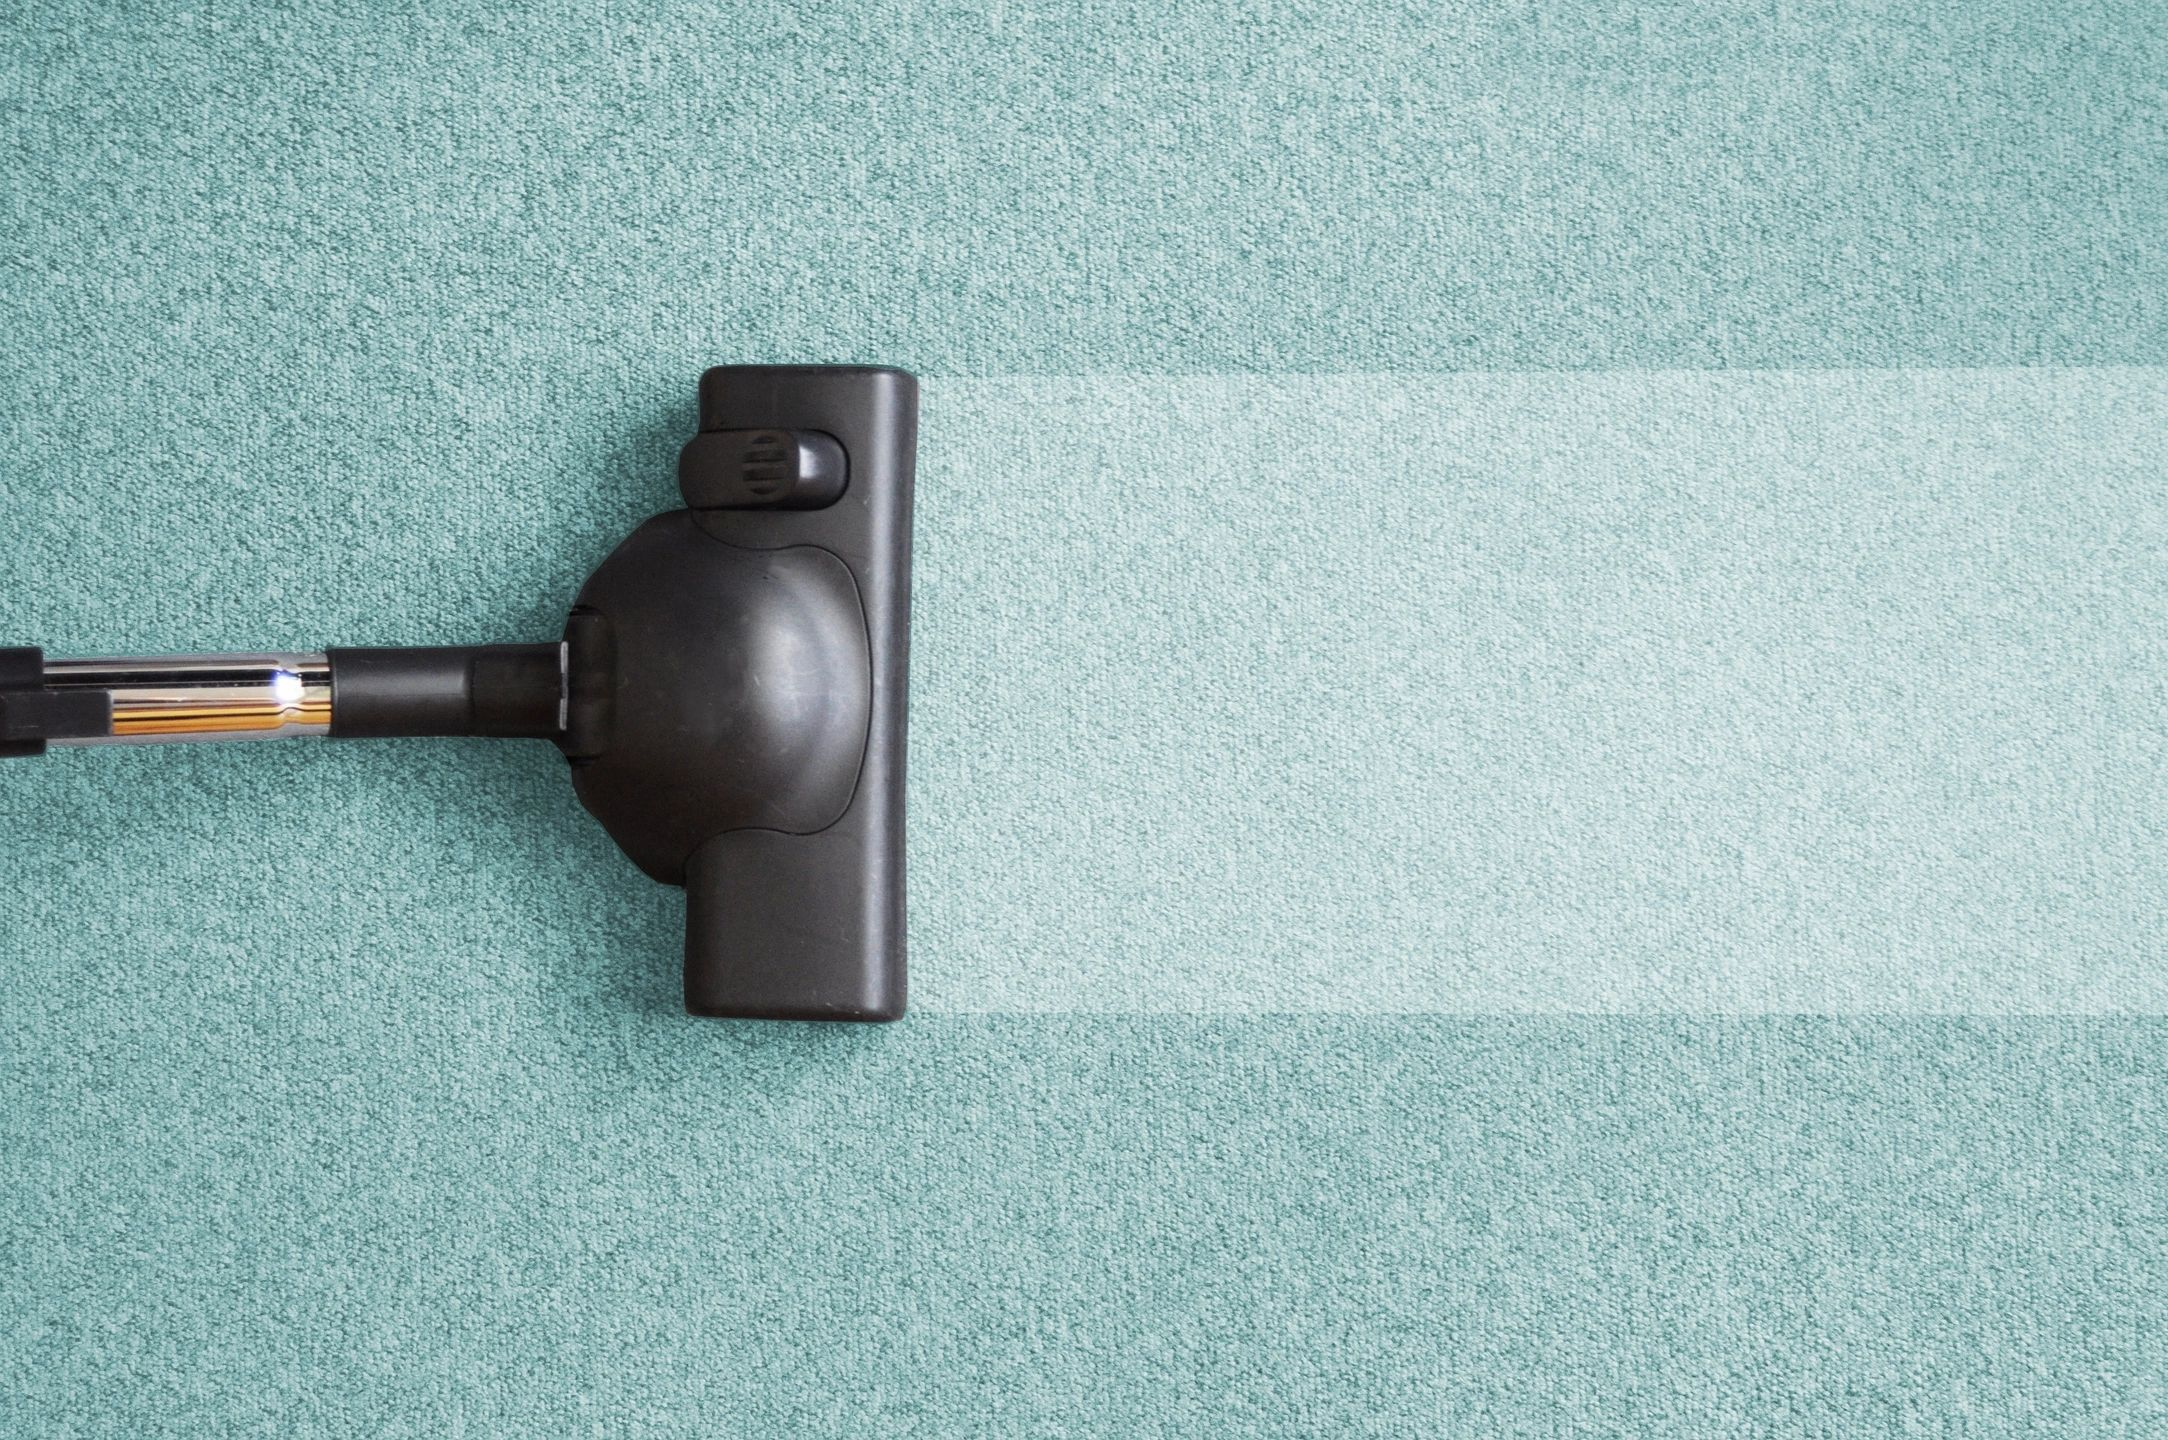 A black vacuum cleaning a blue and green carpet.